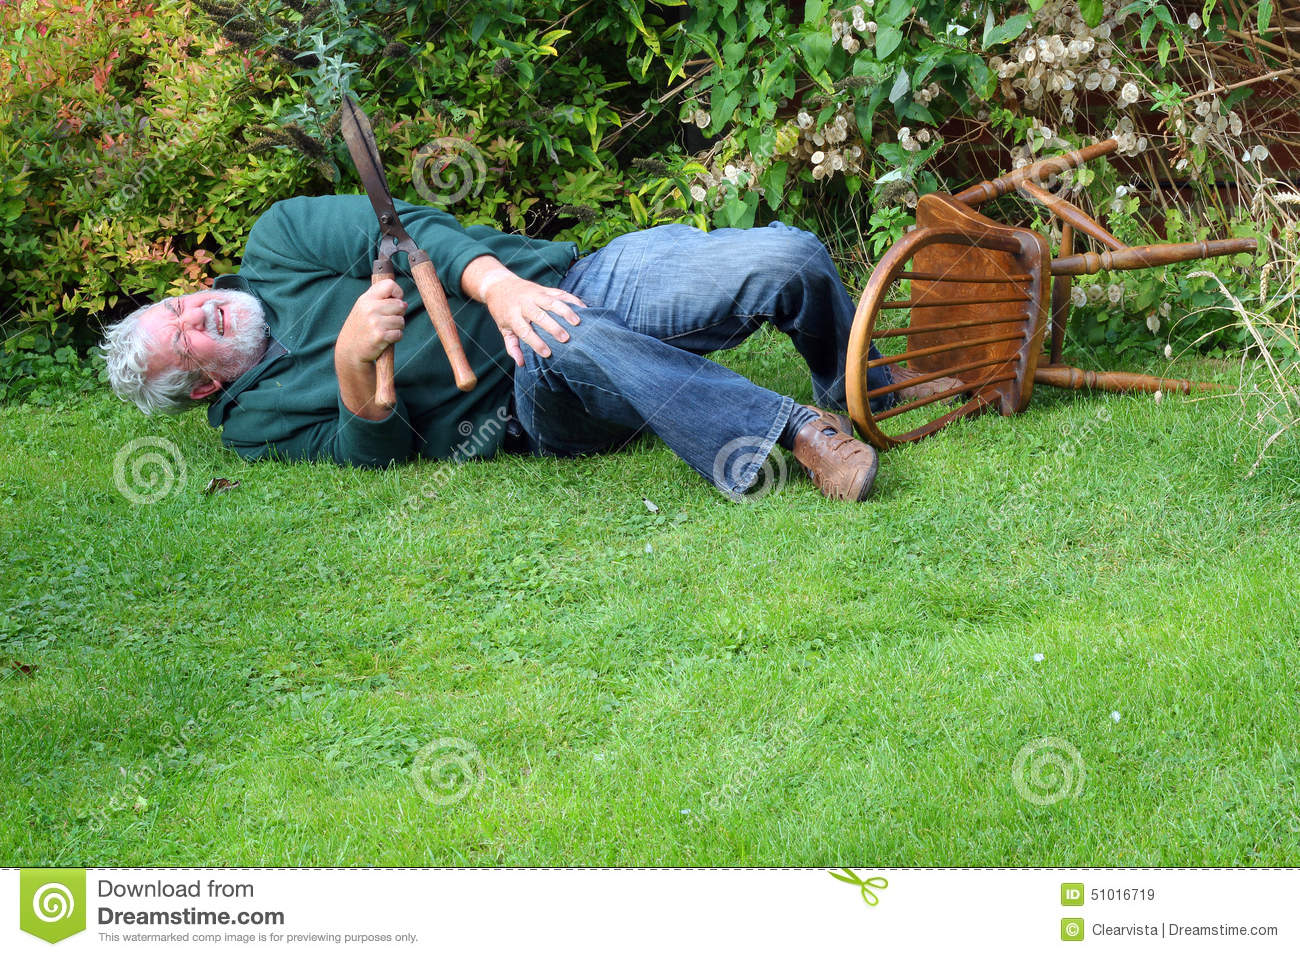 Accident Garden Fallen Over Danger Stock Image Image